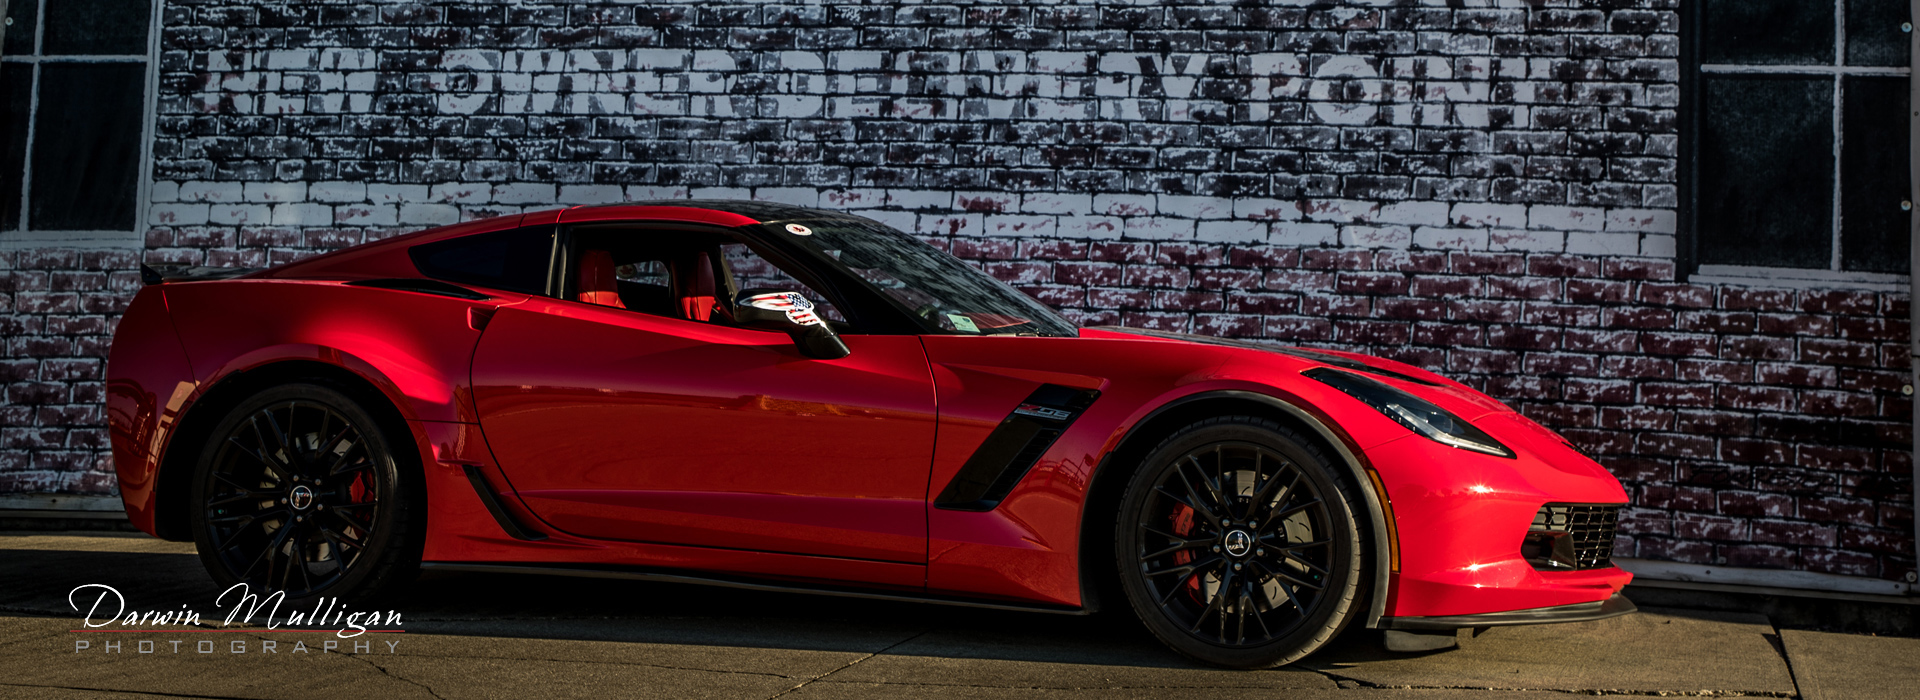 Torch Red Z06 at Mid America Motorworks Effingham Illinois